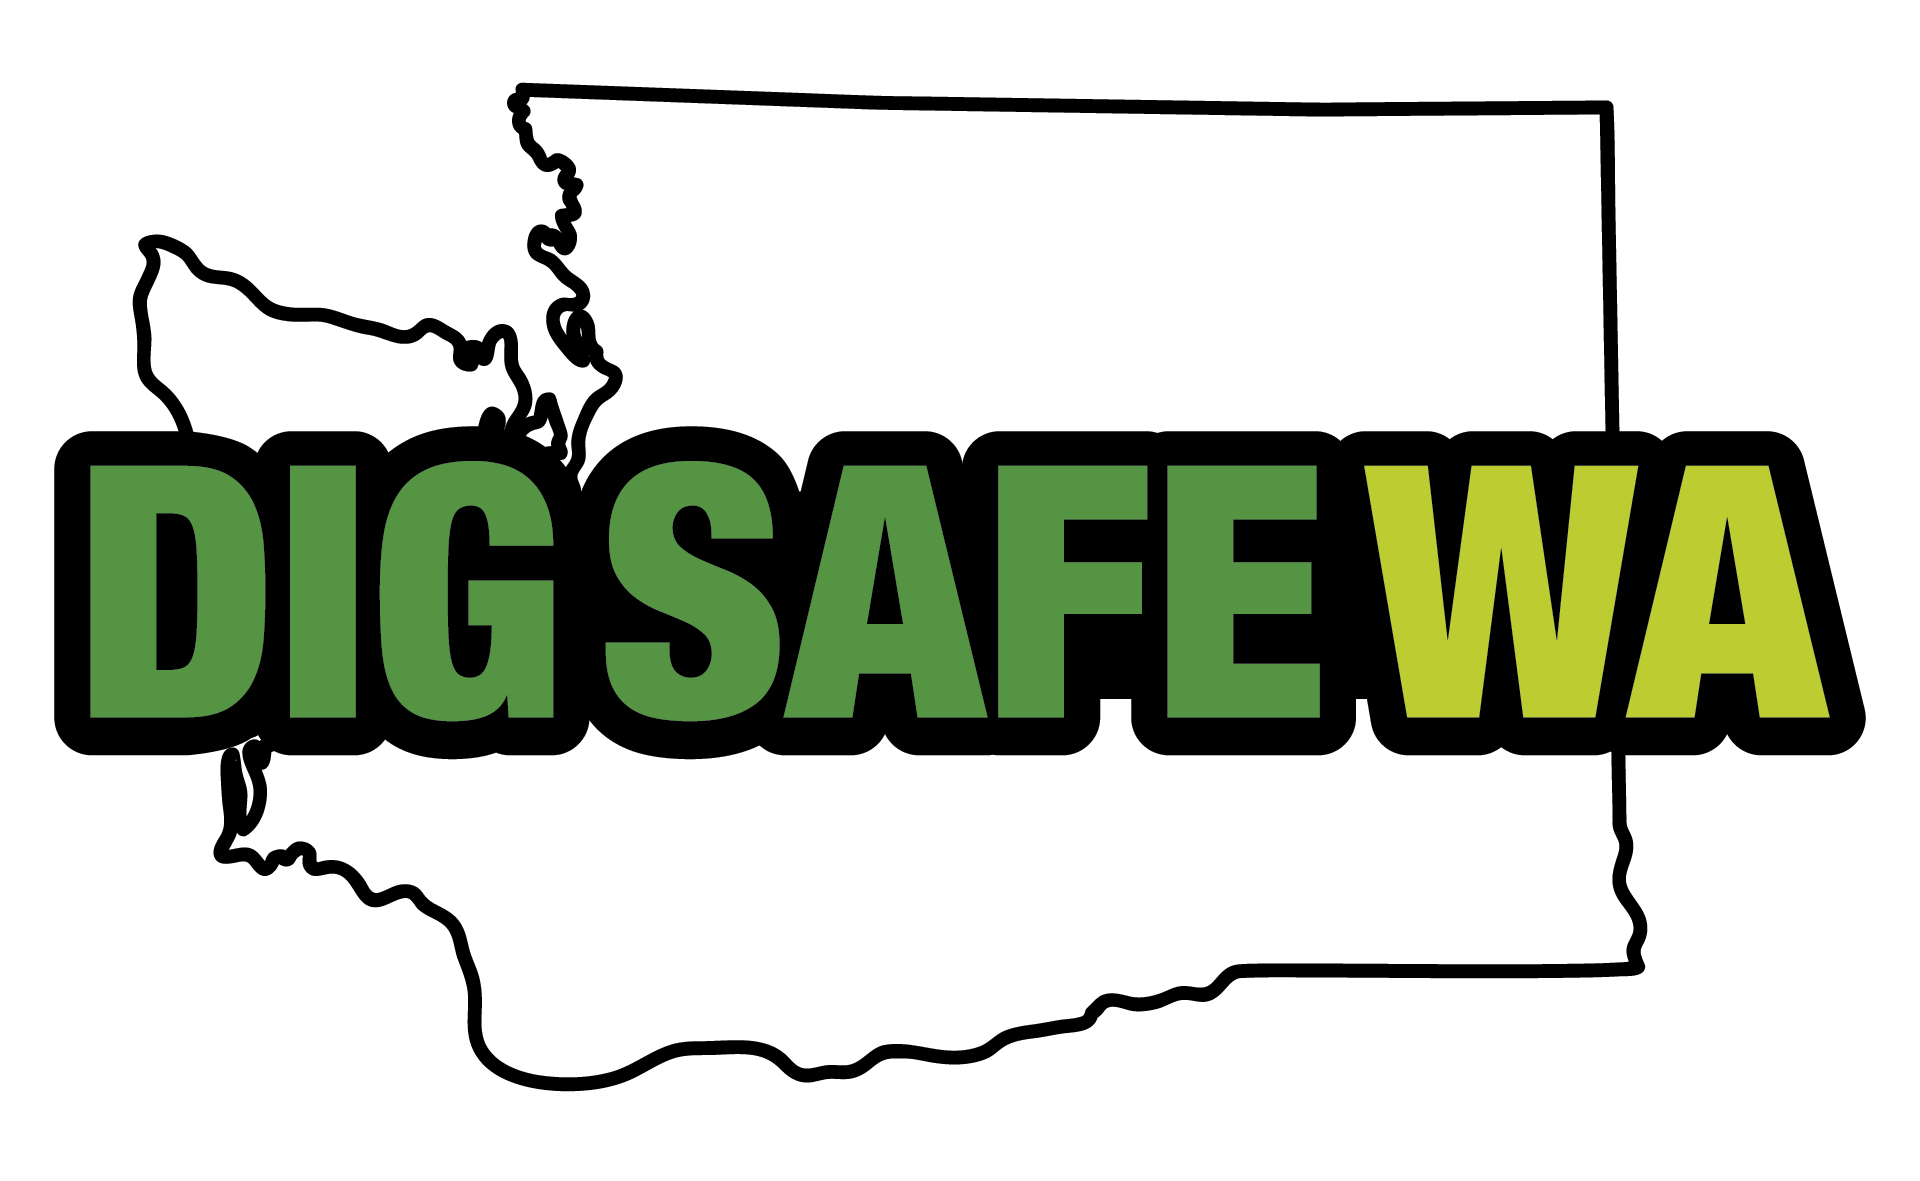 Dig Safe Washington